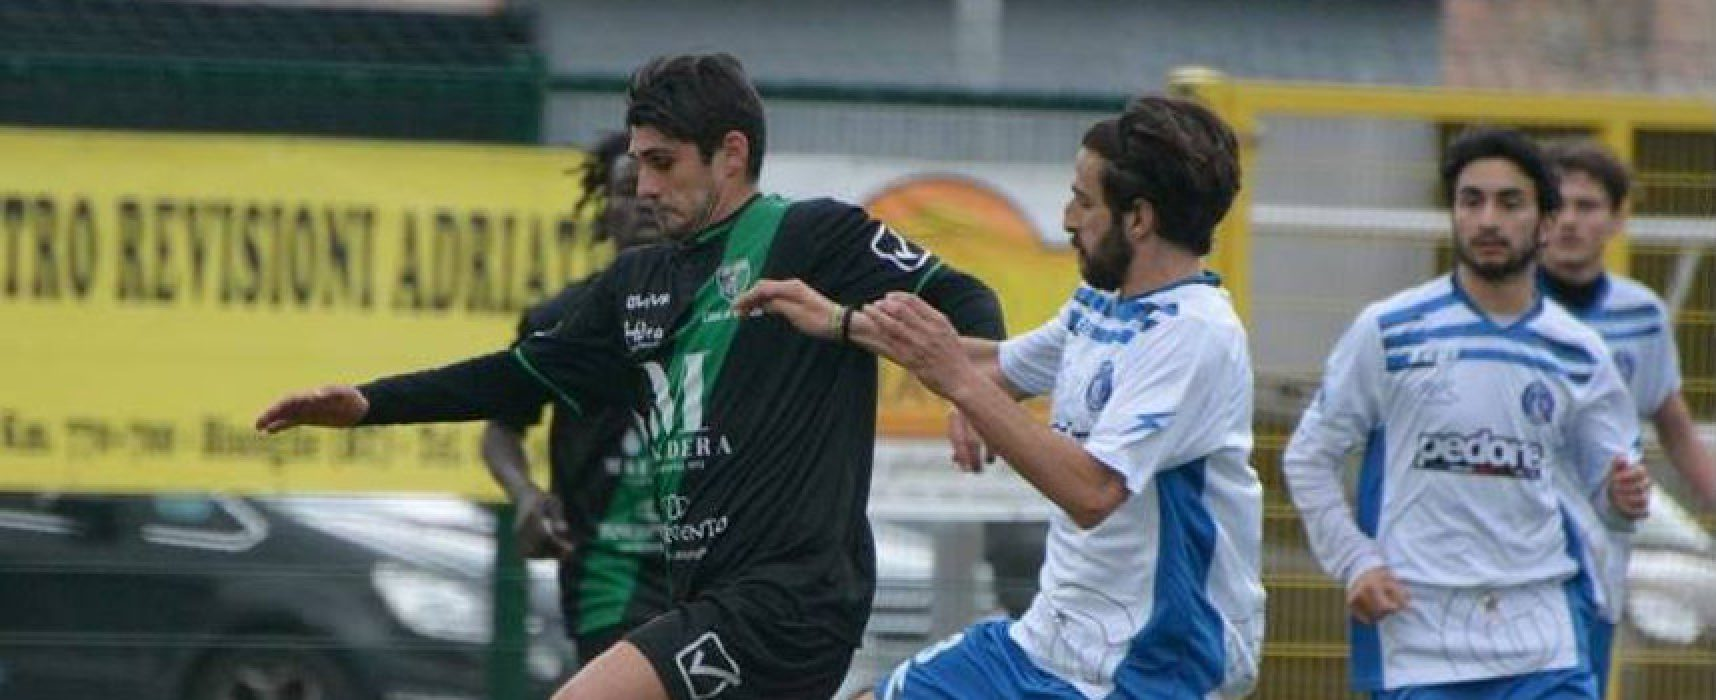 Unione Calcio – Corato 2-2 / VIDEO HIGHLIGHTS